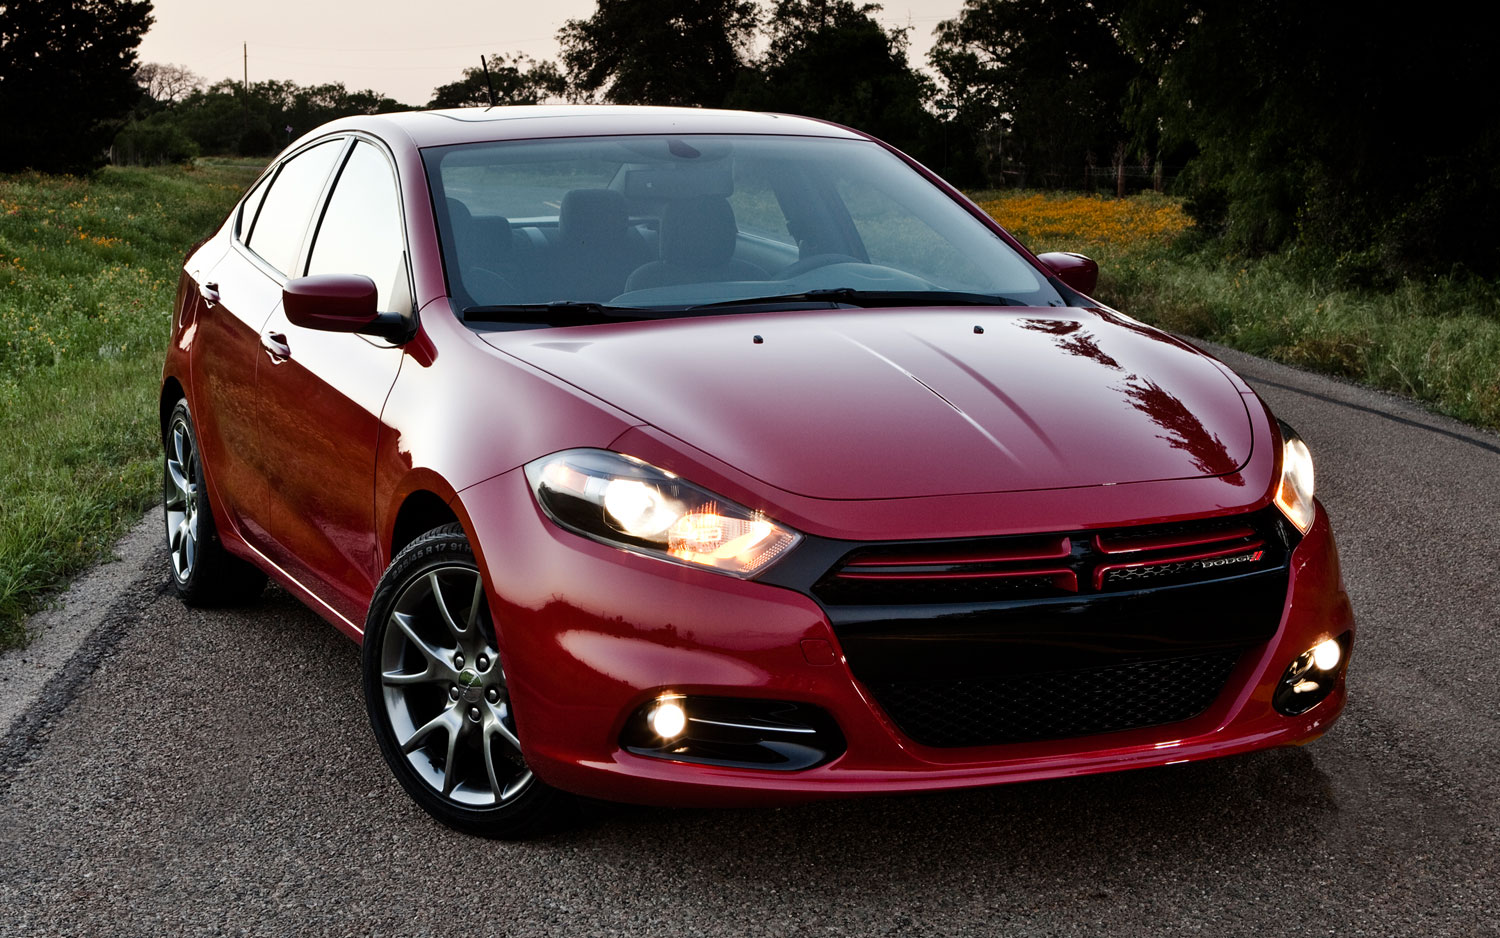 2013 Dodge Dart Rallye Turbo Front View 1